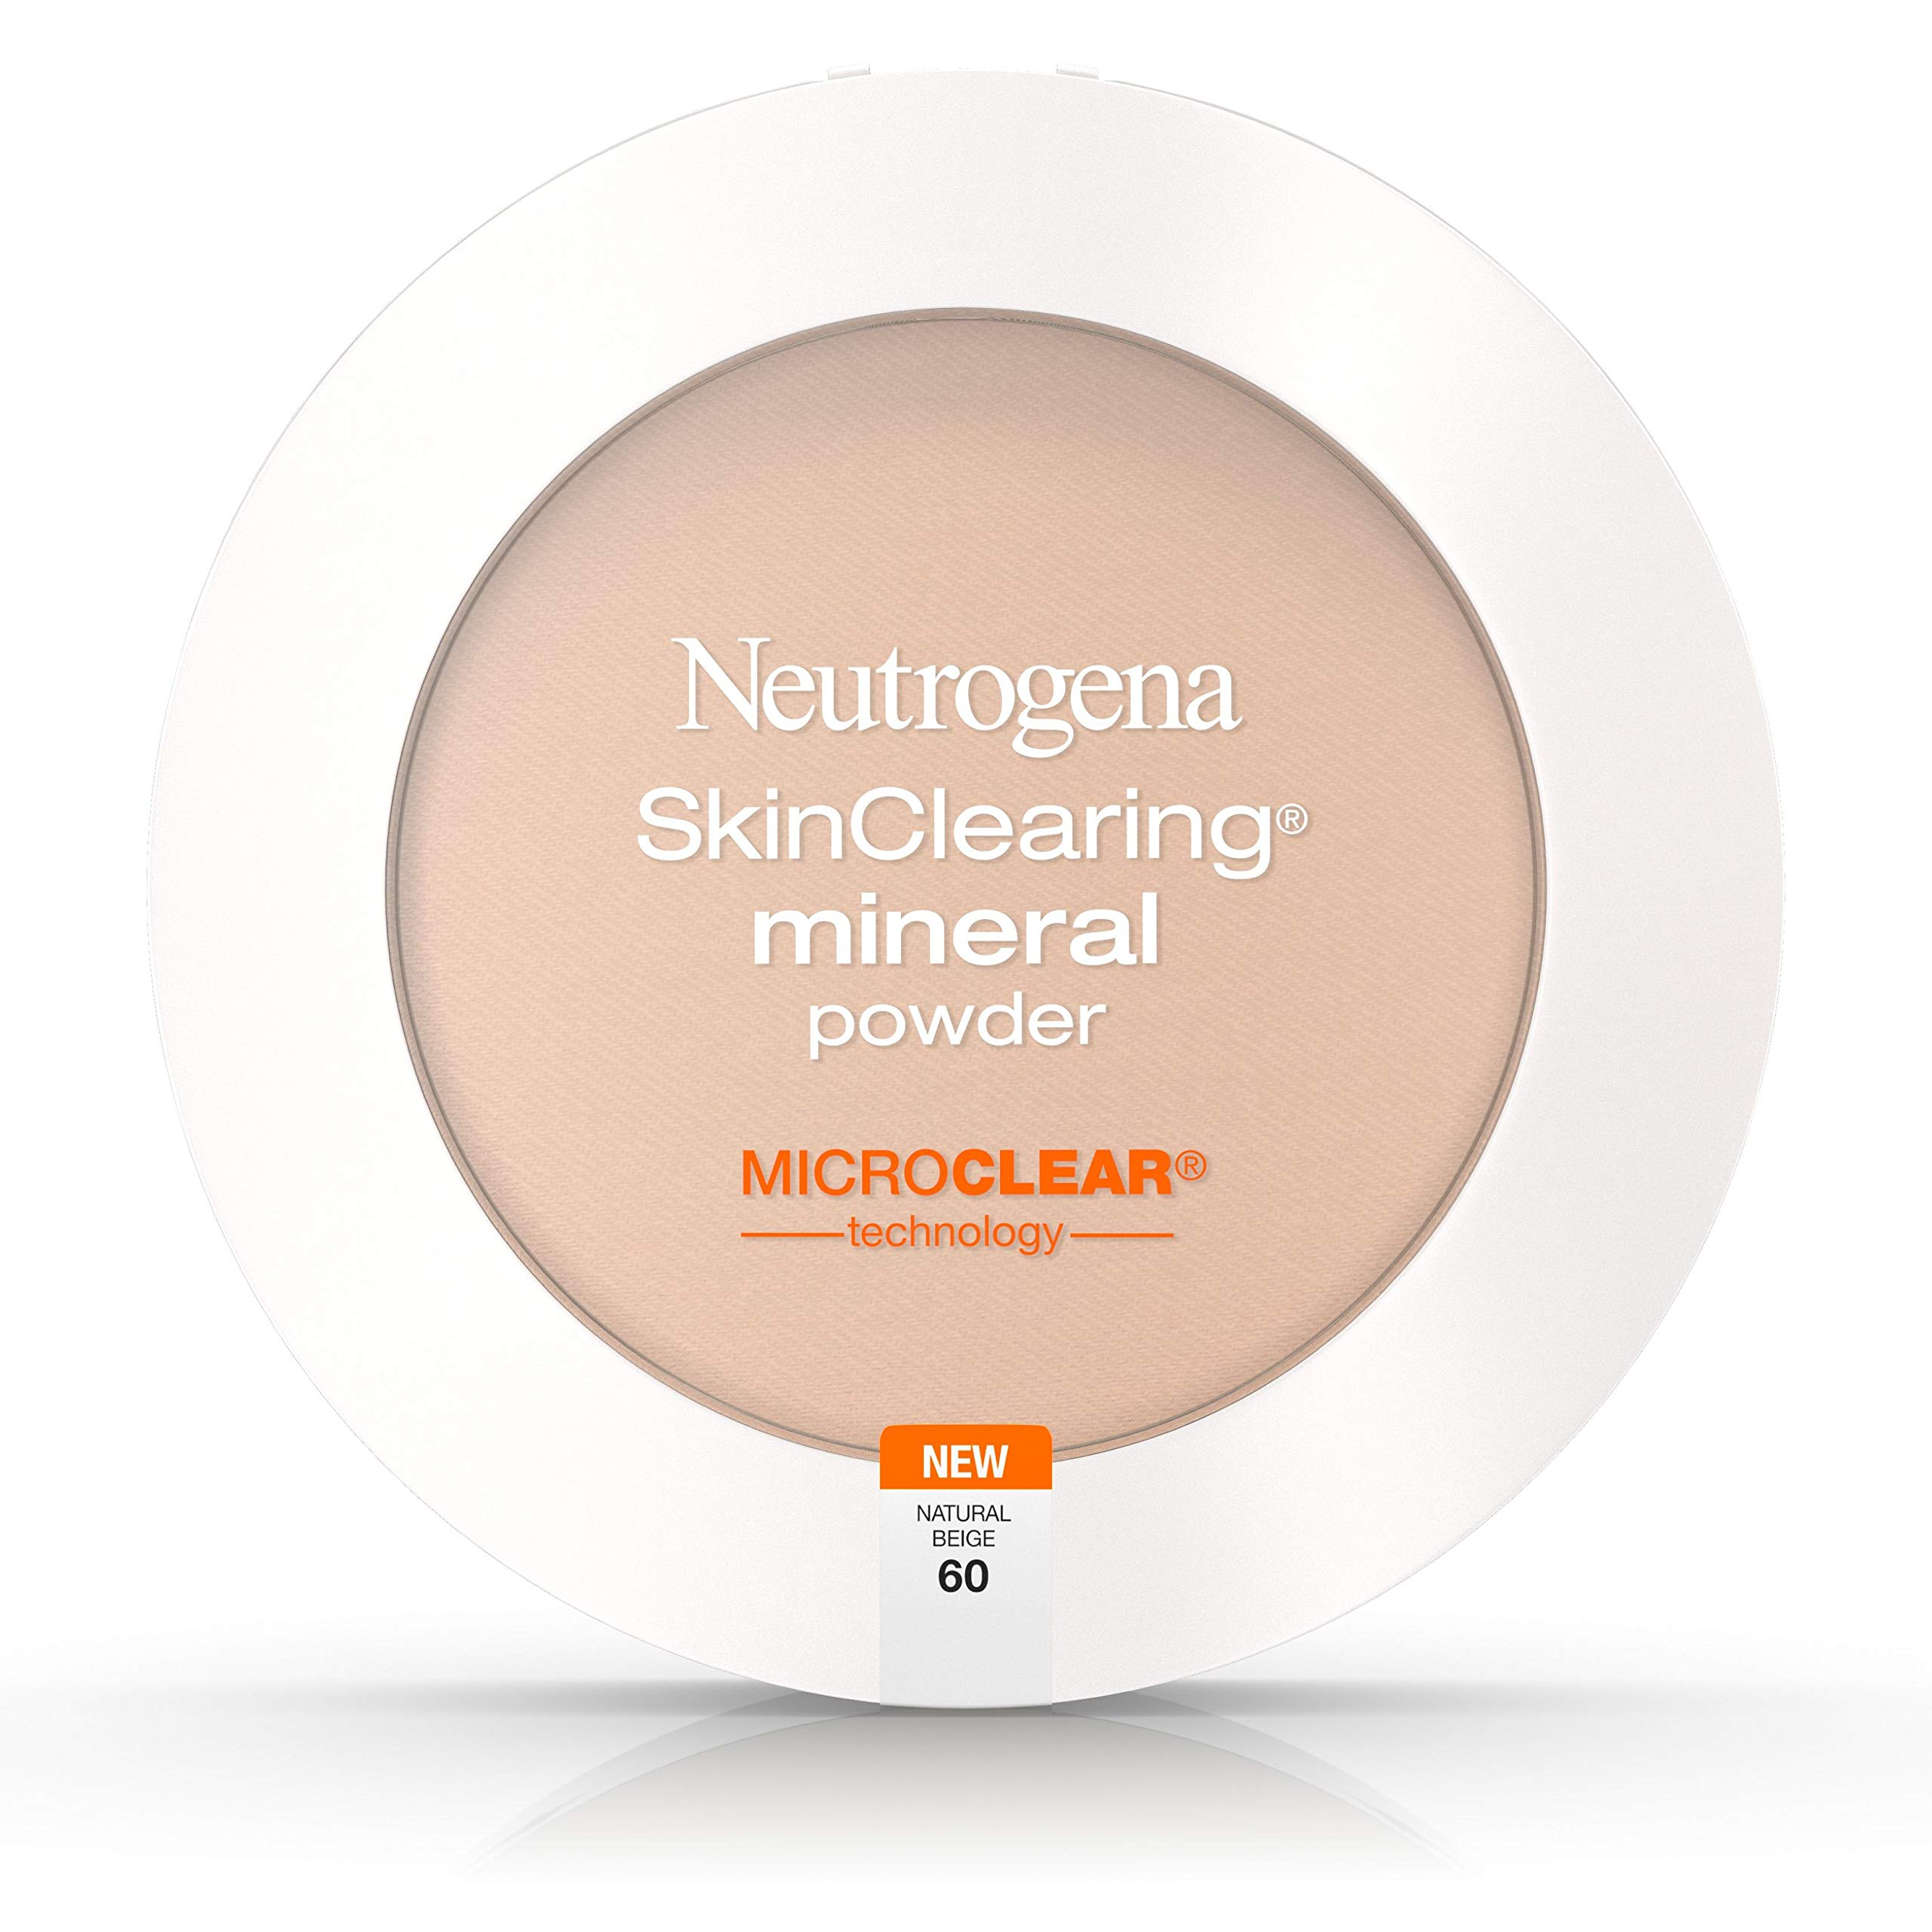 Neutrogena Skinclearing Mineral Powder, Natural Beige 60, .38 Oz. Pack of 2